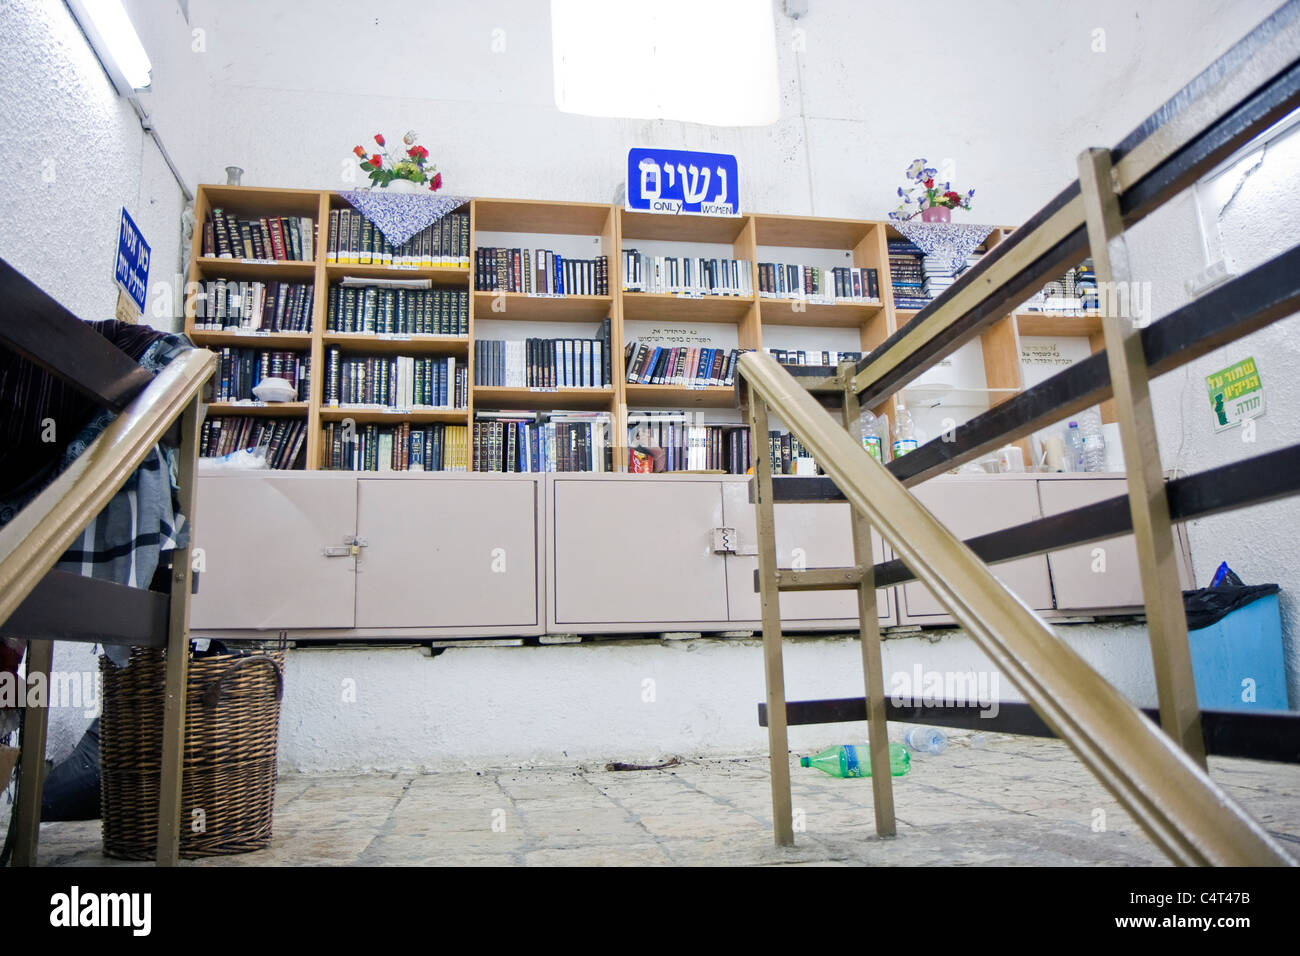 Women's part in a synagogue located at Nebi Samuel tomb next to Jerusalem. Closet with religious books and signs - Stock Image